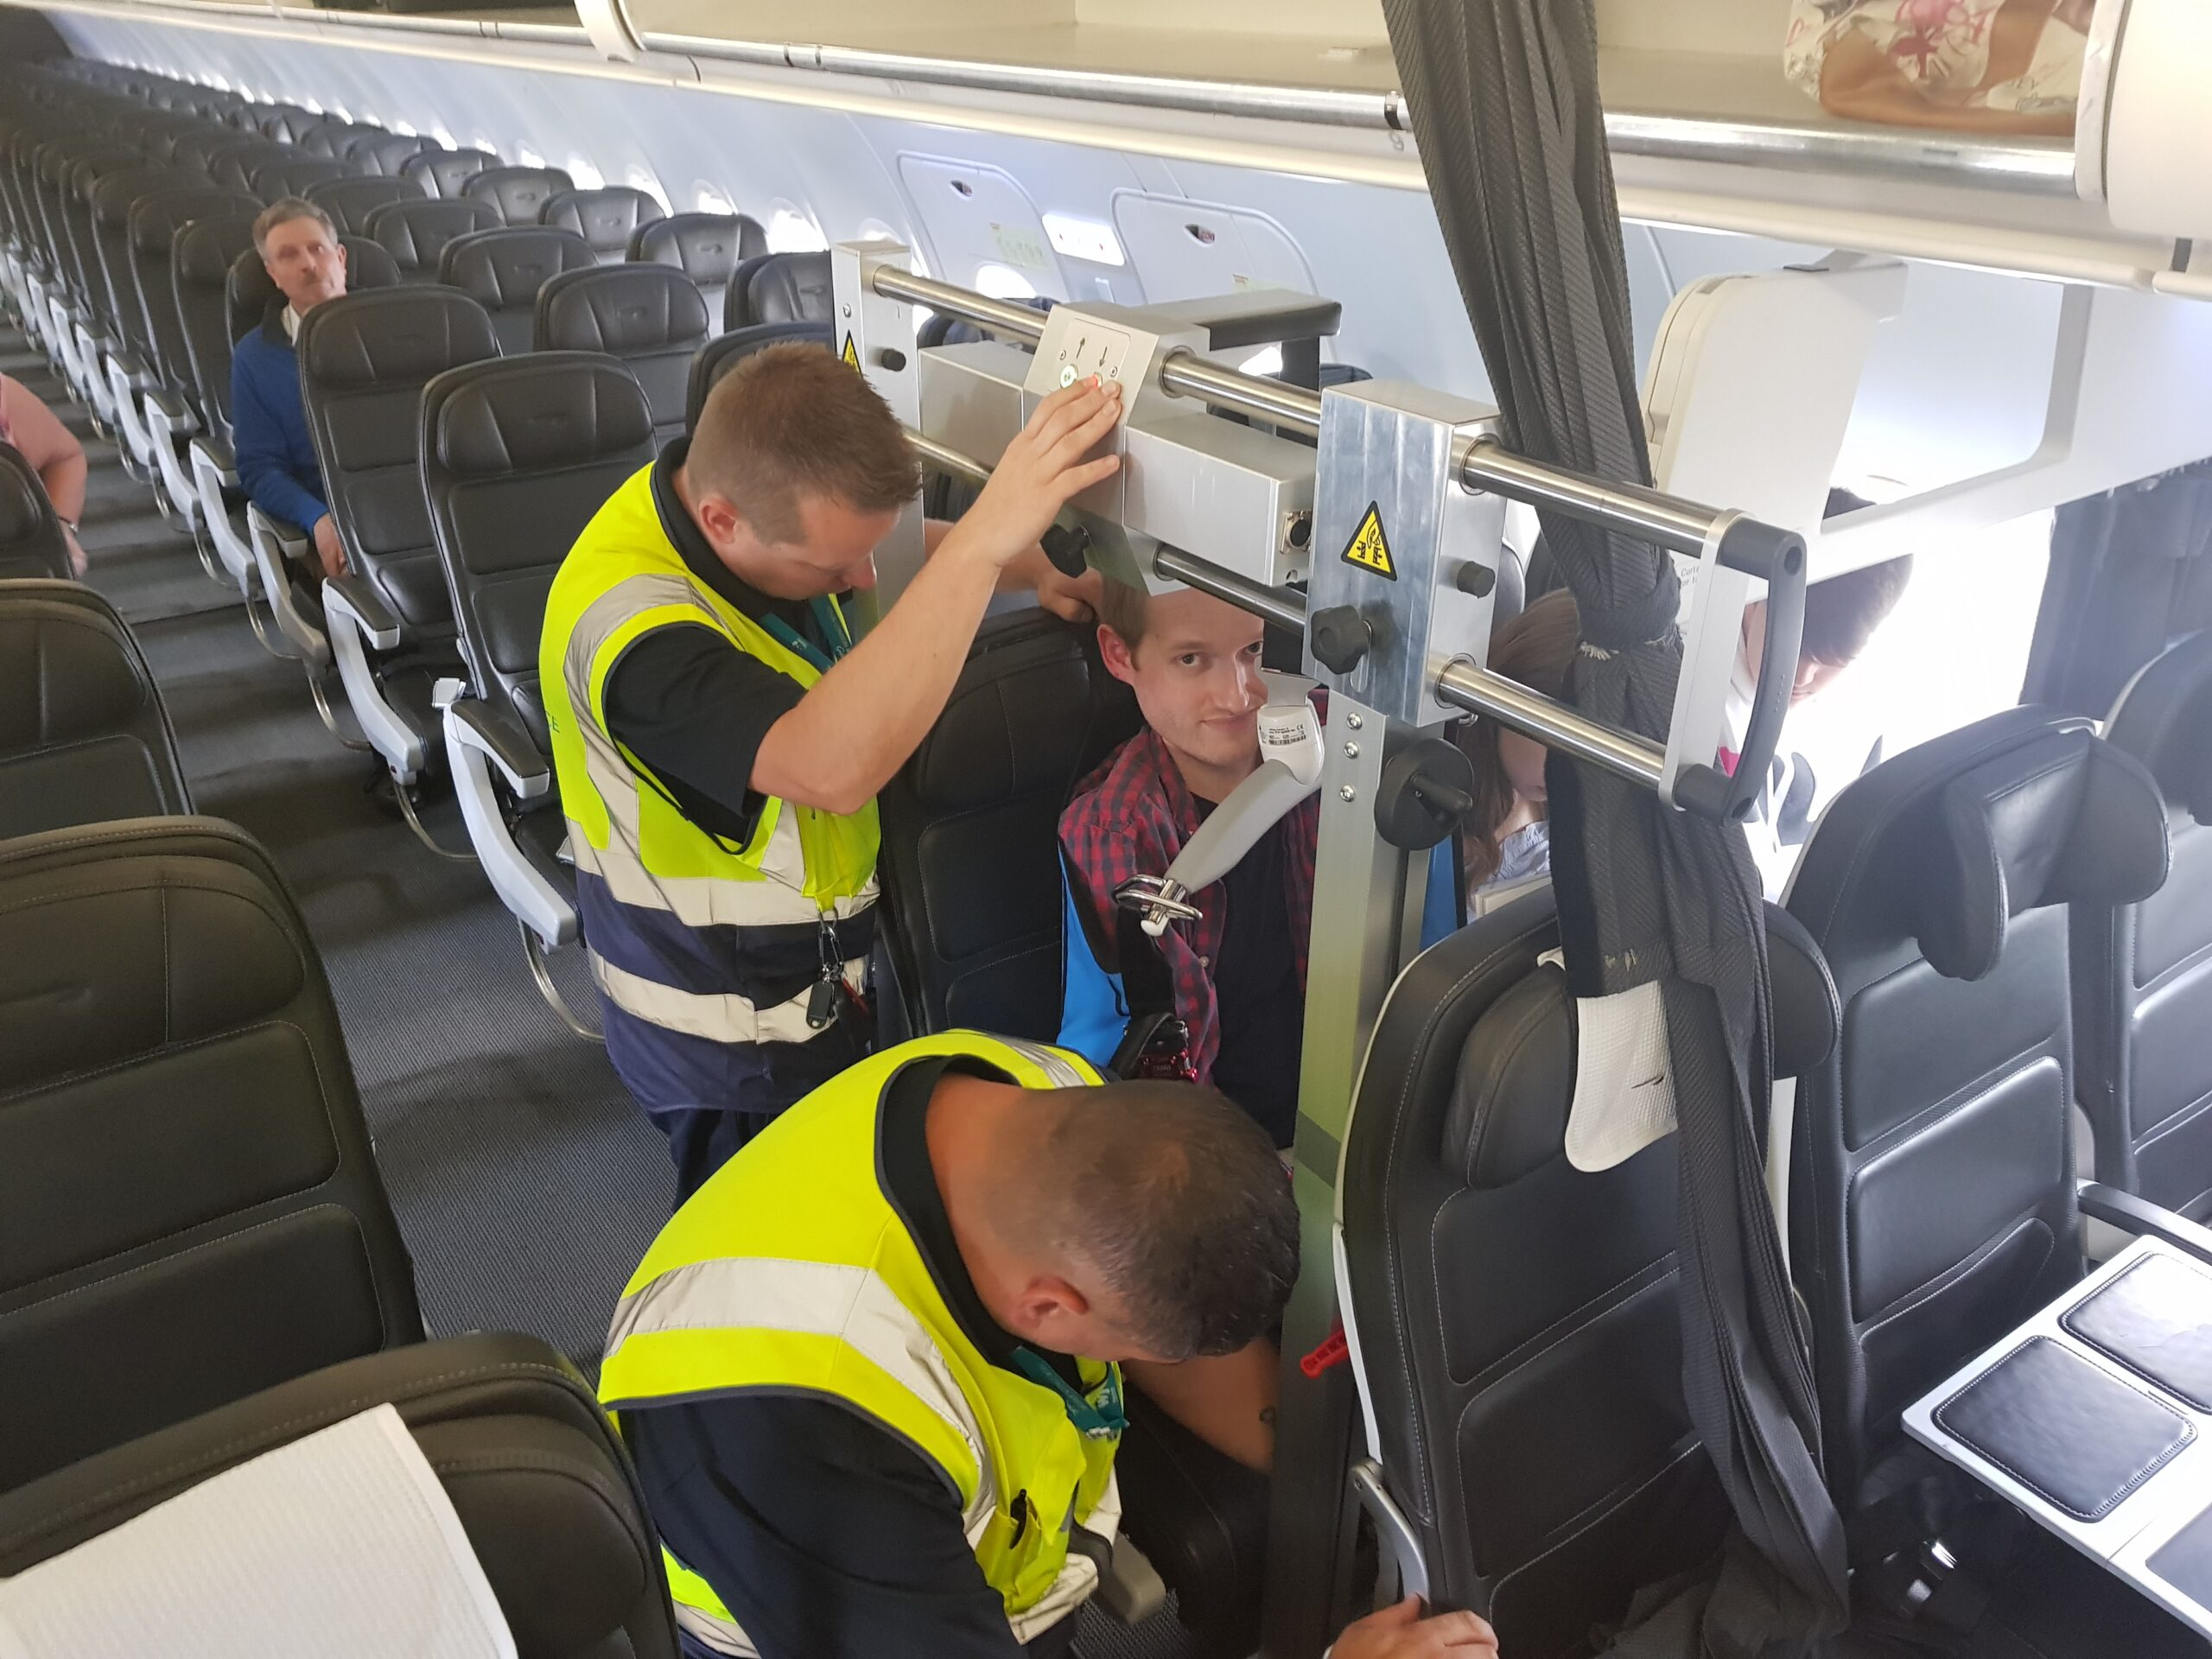 Being transferred into an aircraft seat